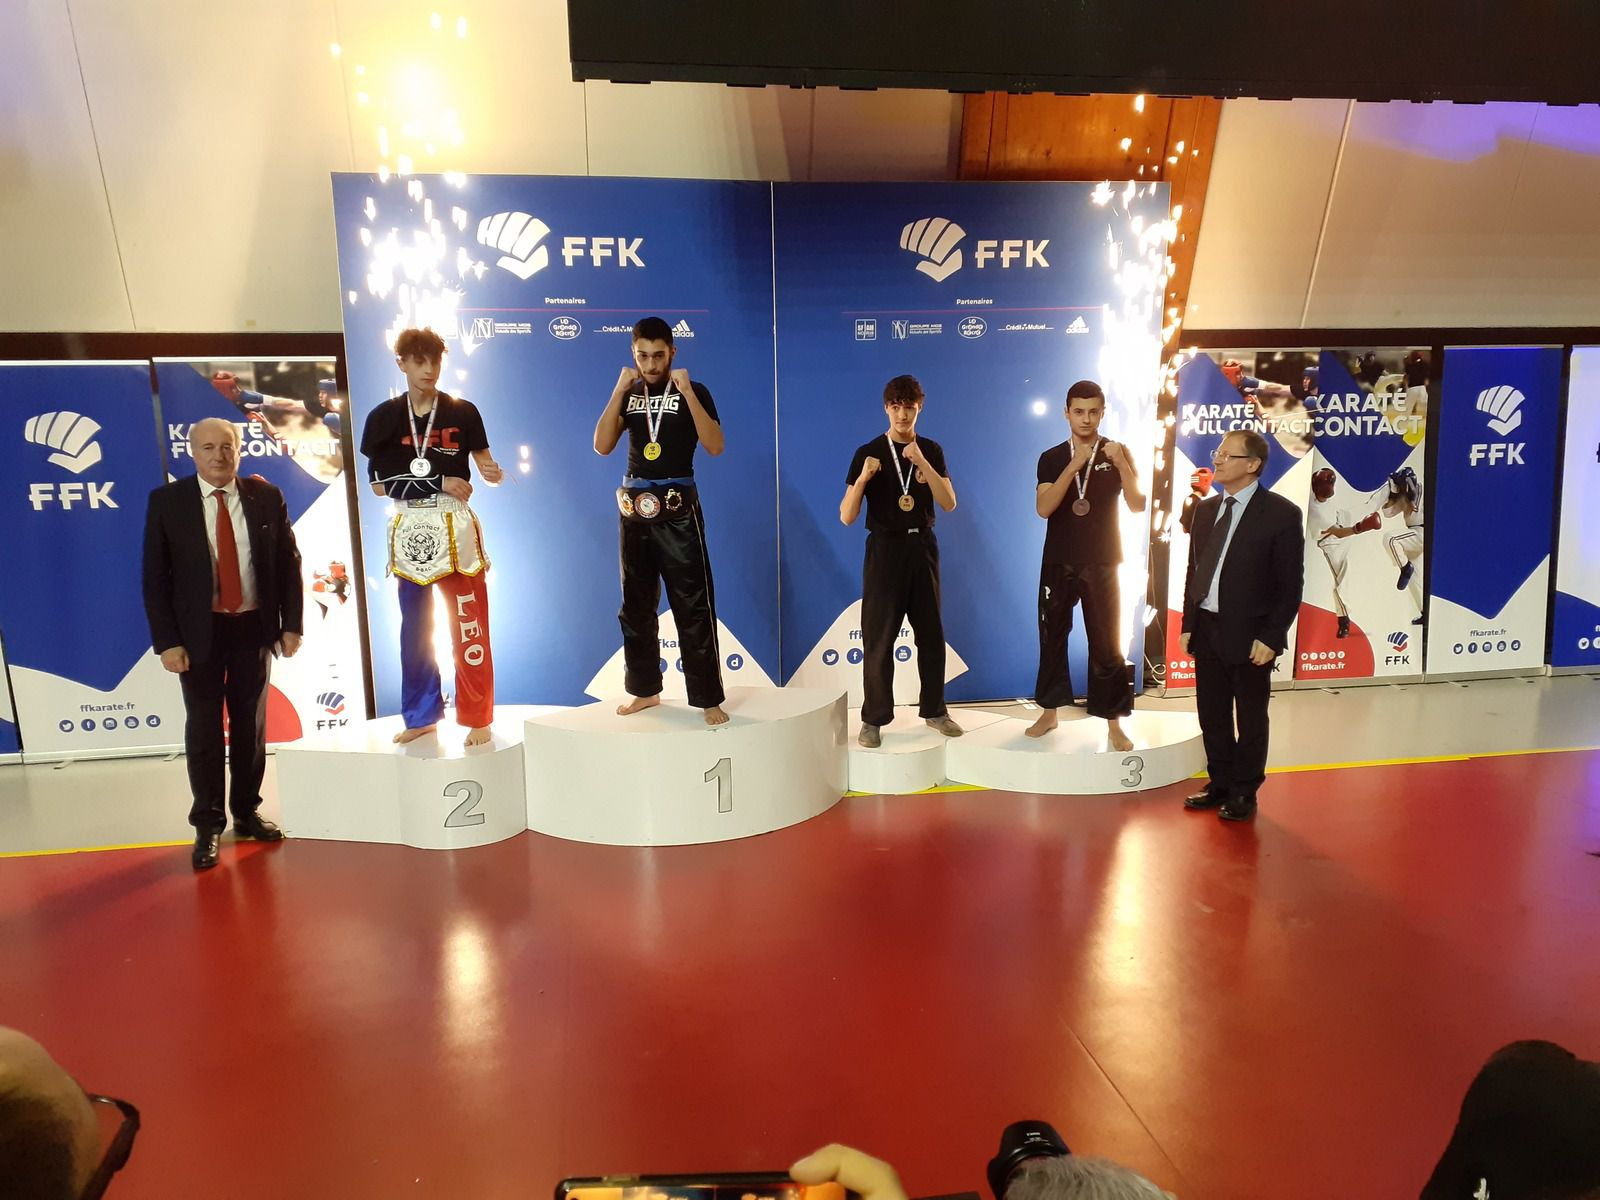 LES karatékas vénissians se sont distingués à l'Open International de light et full-contact de Paris - Photos : © avec l'aimable autorisation du Bunkaï Karate Do full-contact